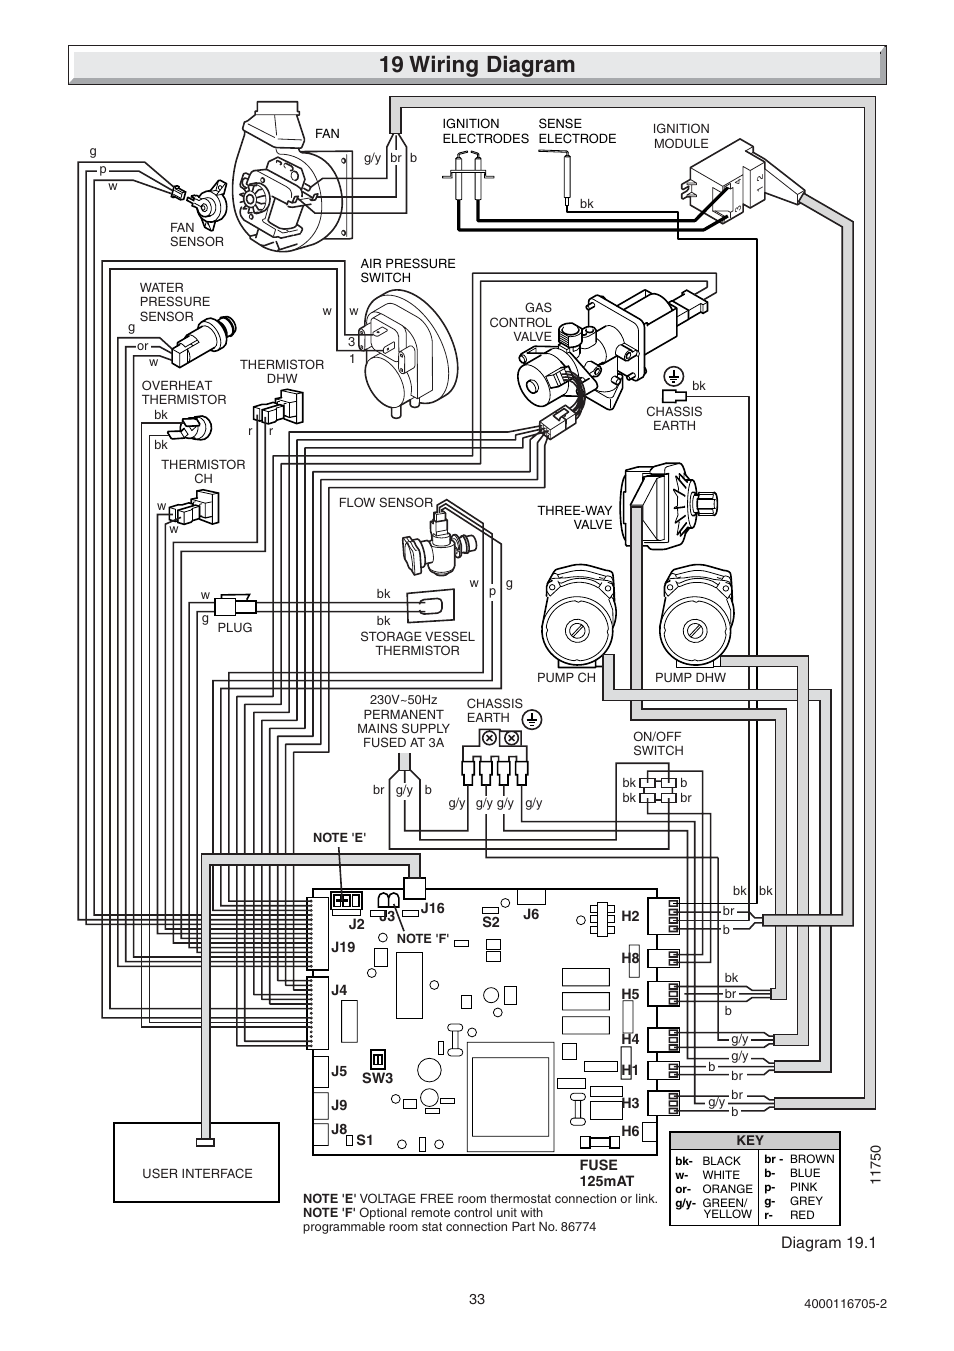 19 Wiring Diagram  Diagram 19 1